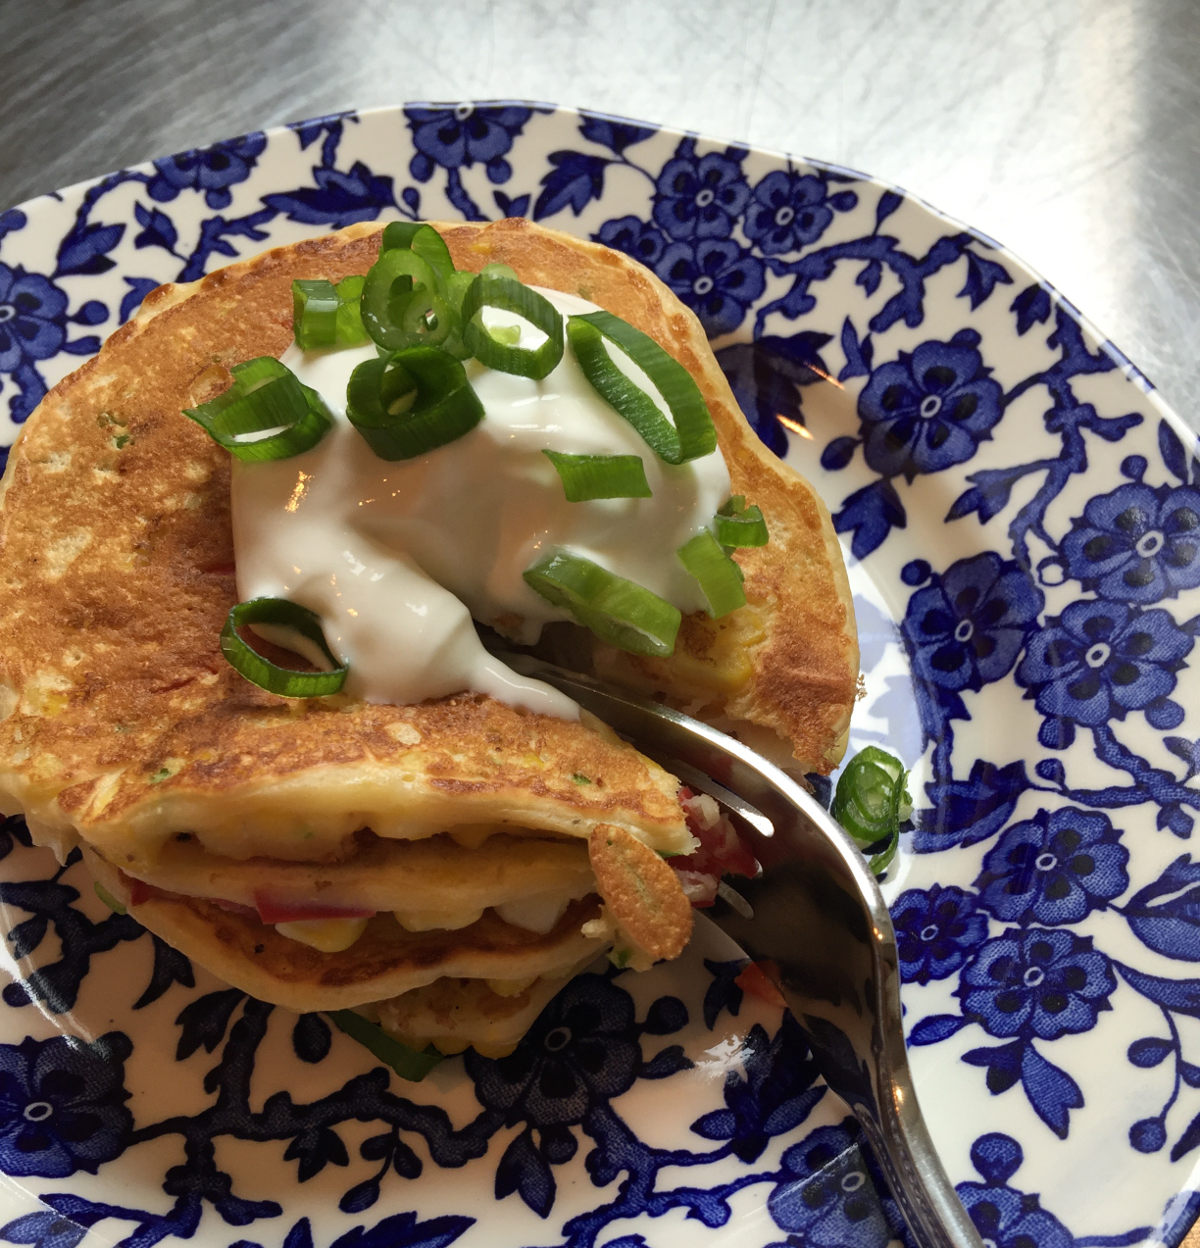 corn and jalapeño pancakes - a tall stack of vegetable pancakes garnished with sour cream and scallion greens - Atticmag.com